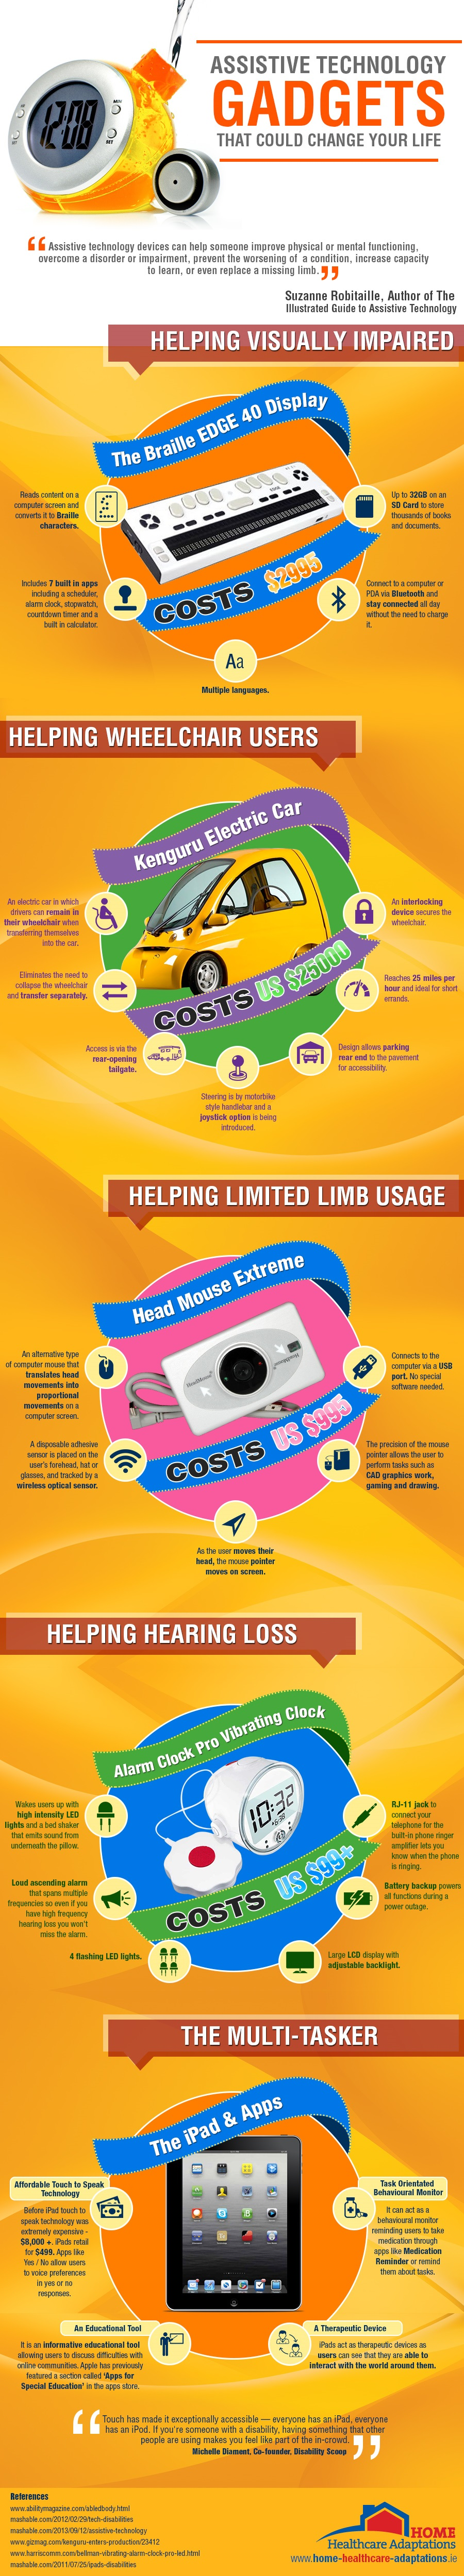 Assistive Technology Gadgets Infographic